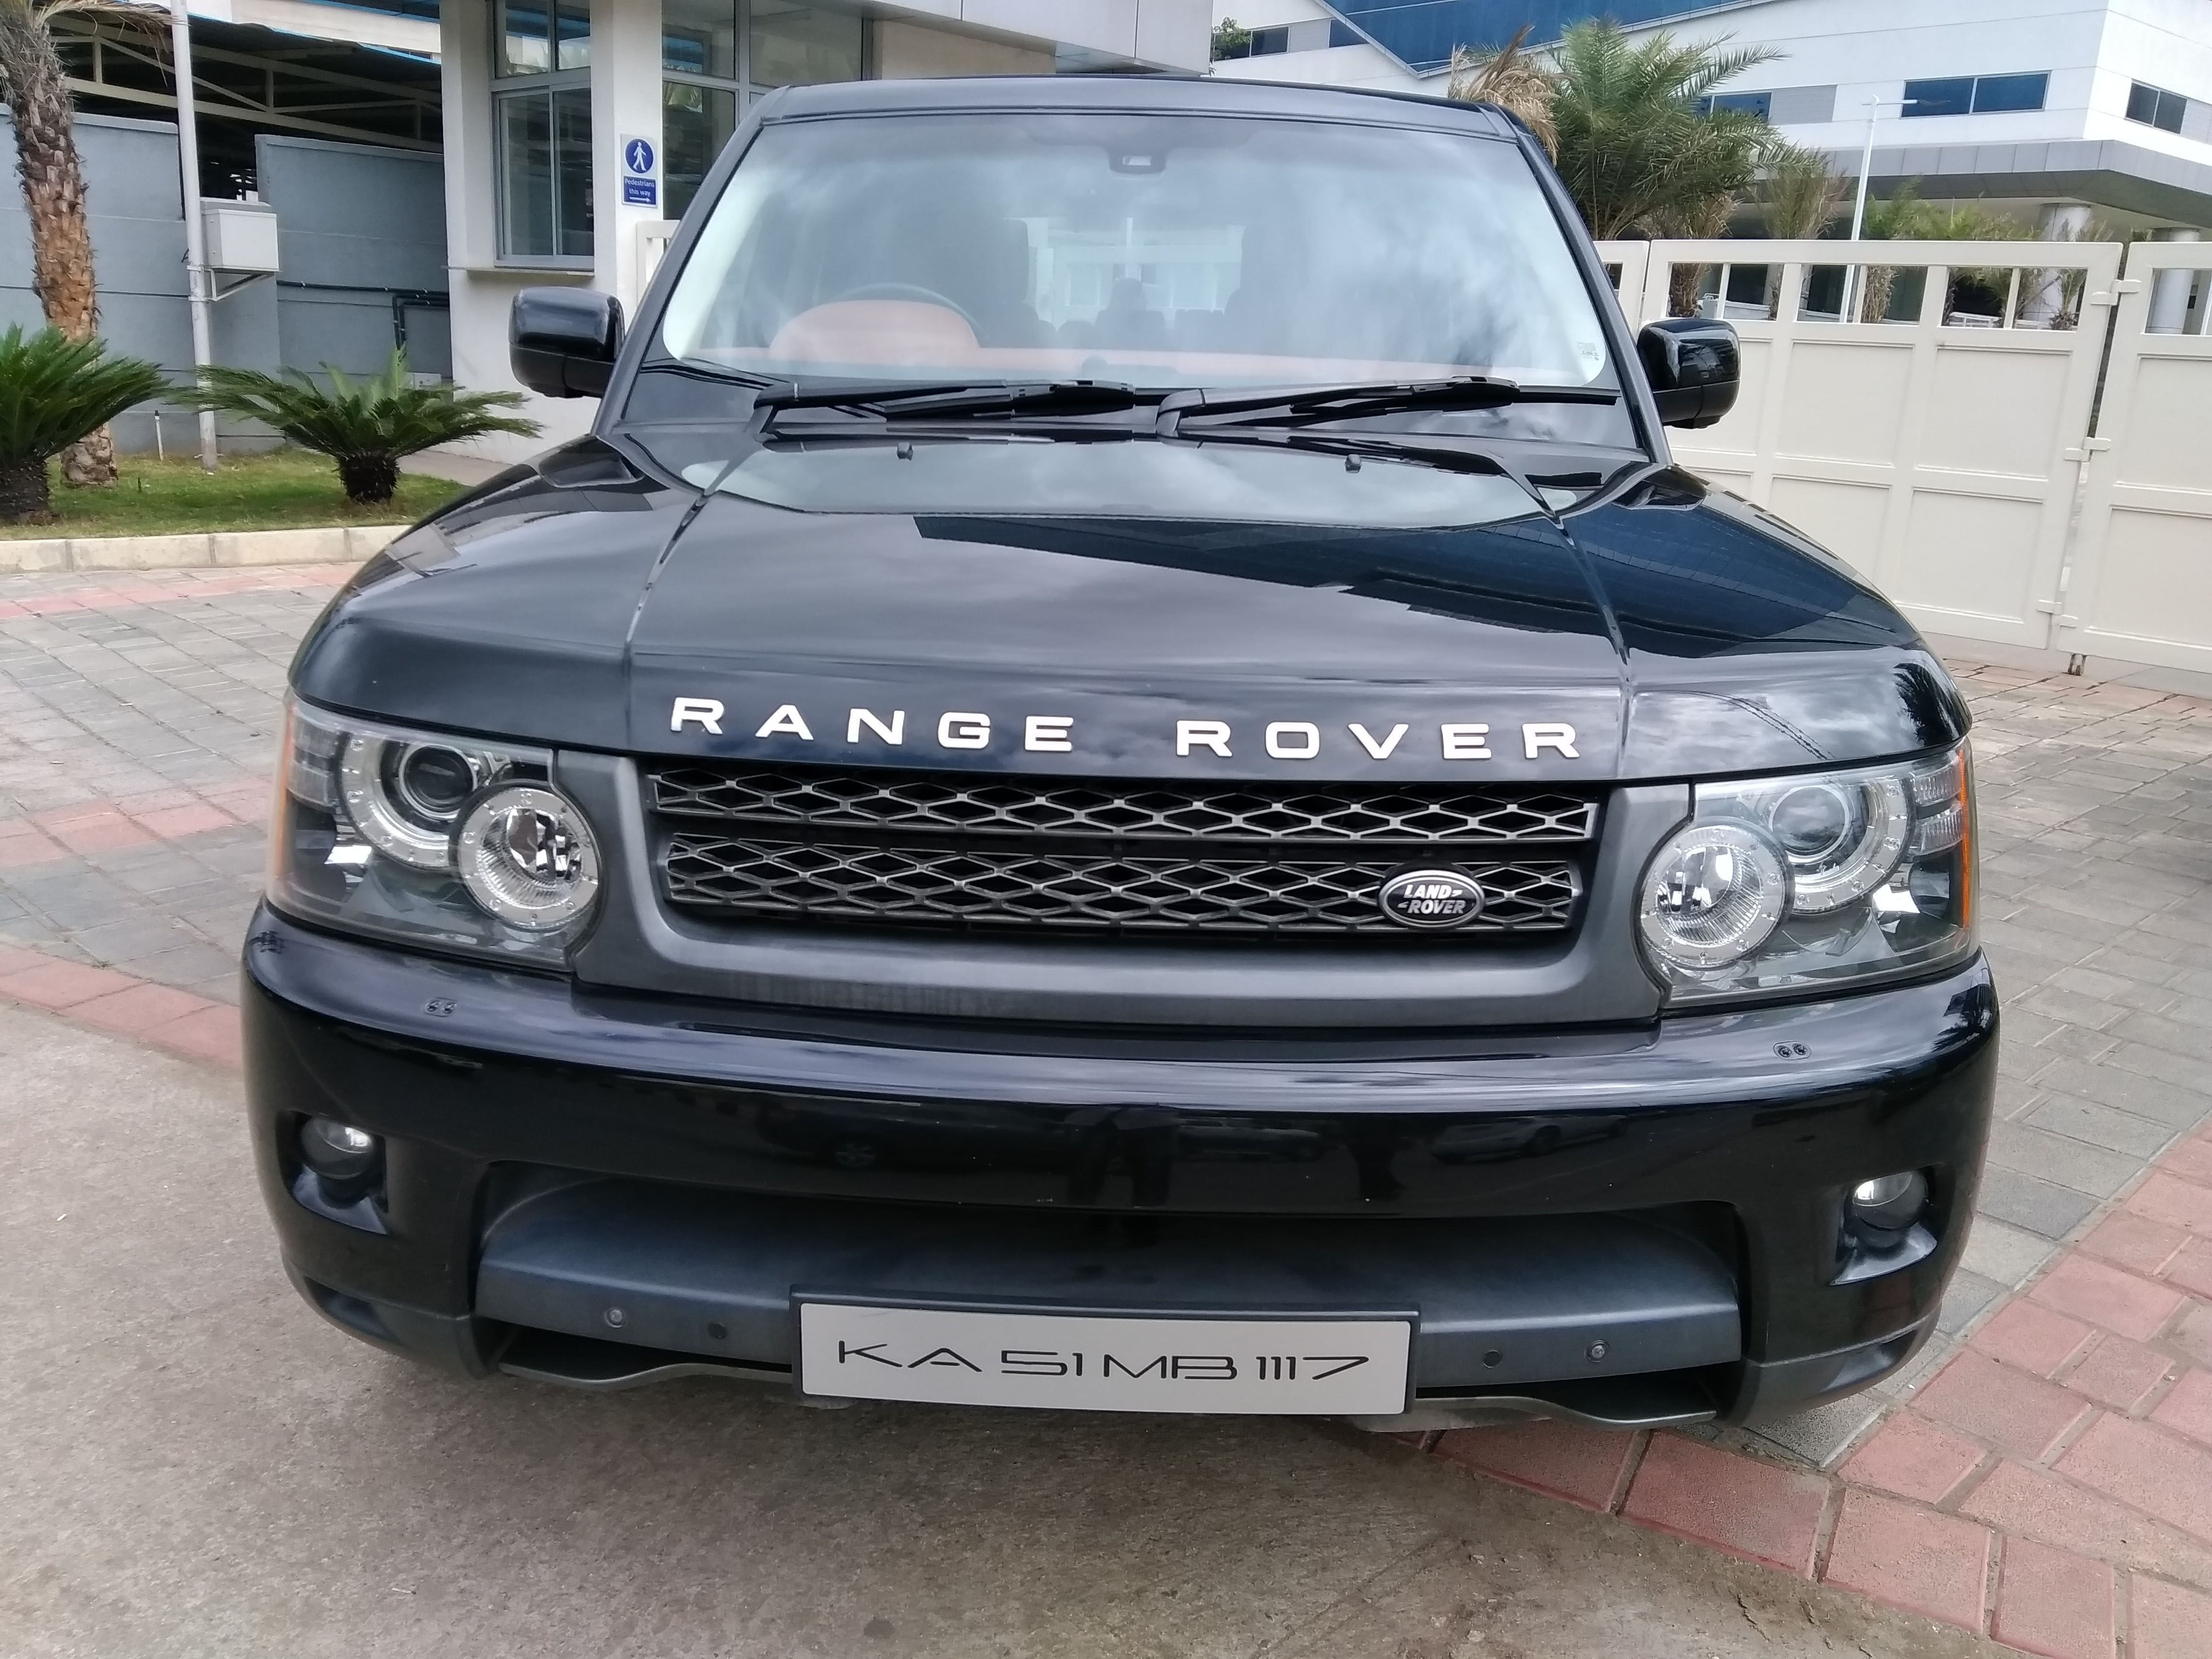 her queen a lwb rovers photo used has news hybrid range landaulet majesty gallery rover the land landrover